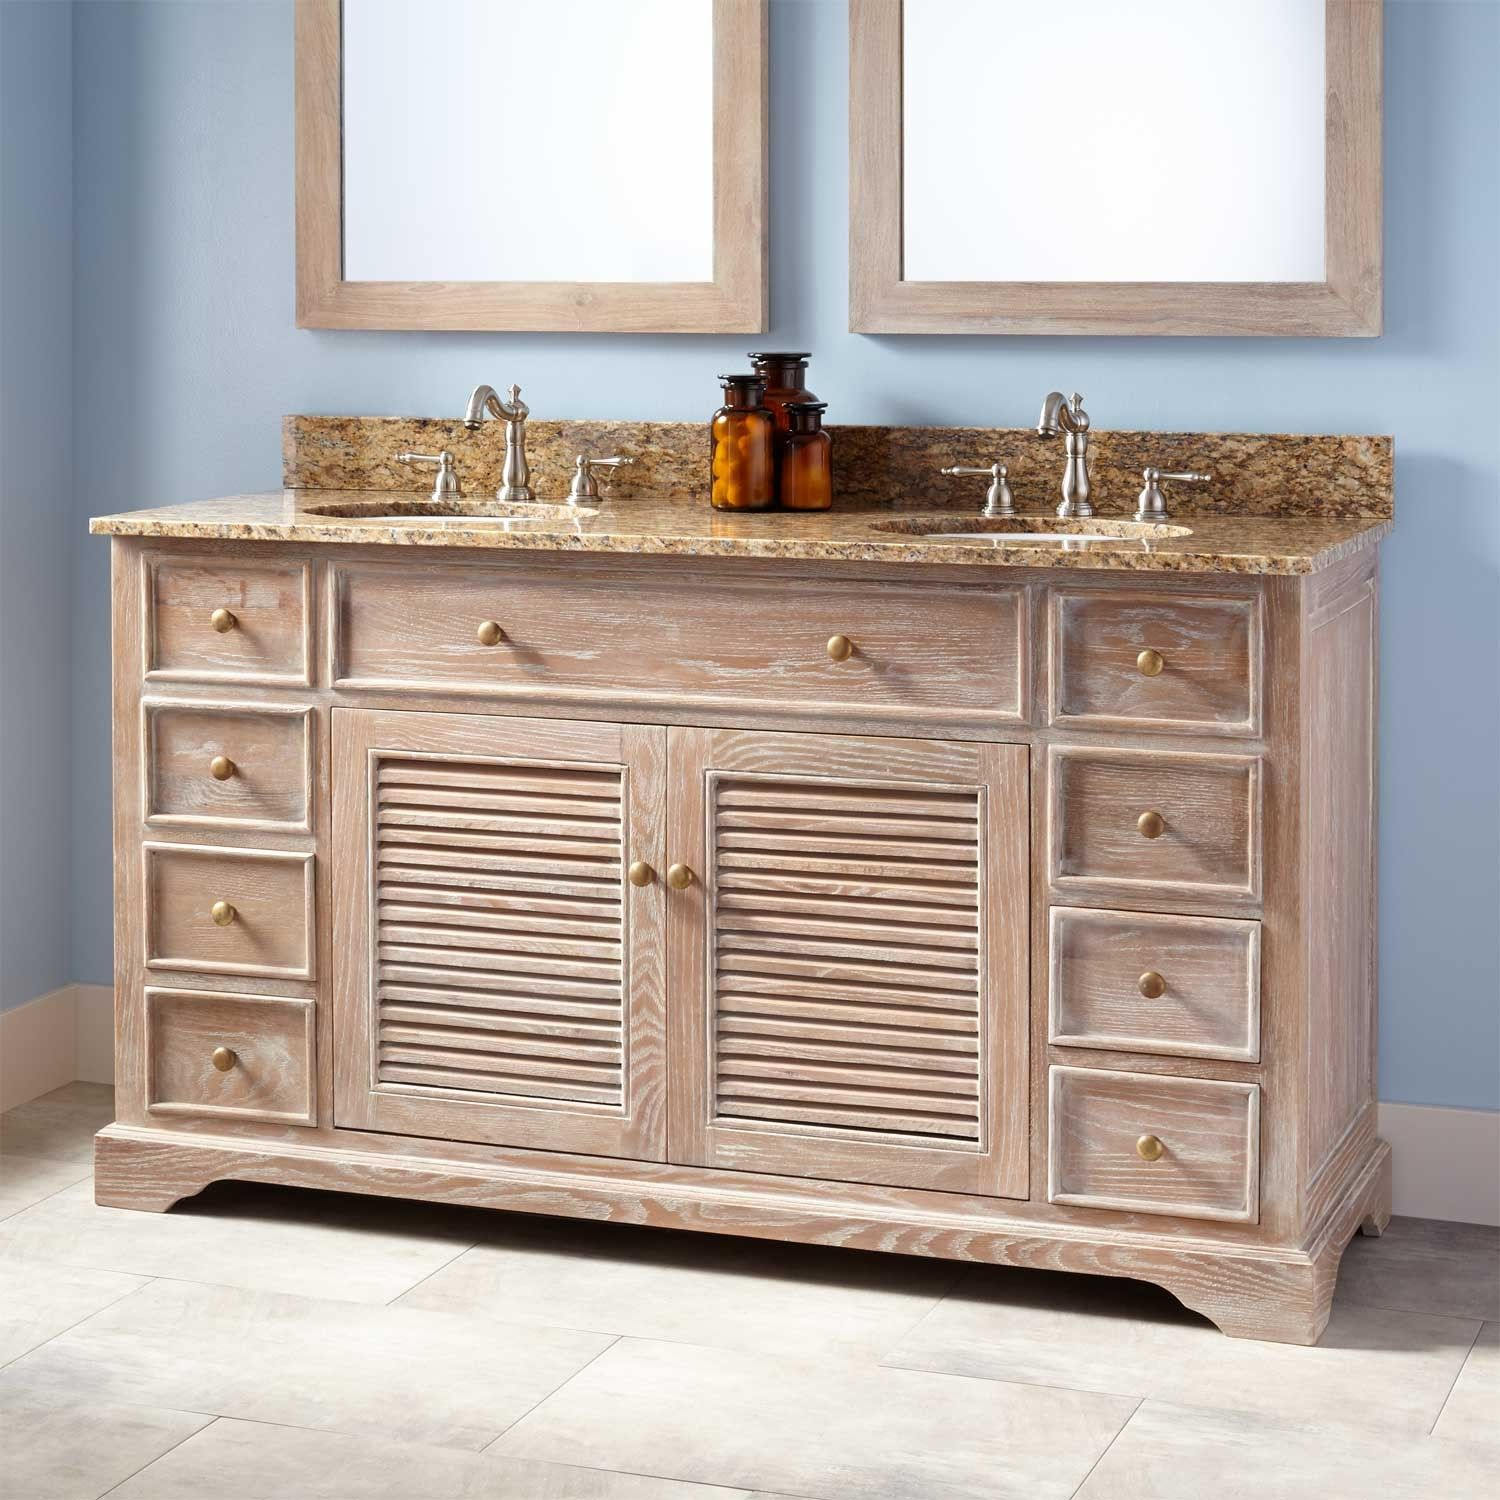 """Undermount Lighting For Kitchen Cabinets: 60"""" Westerfield Double Vanity For Undermount Sinks"""